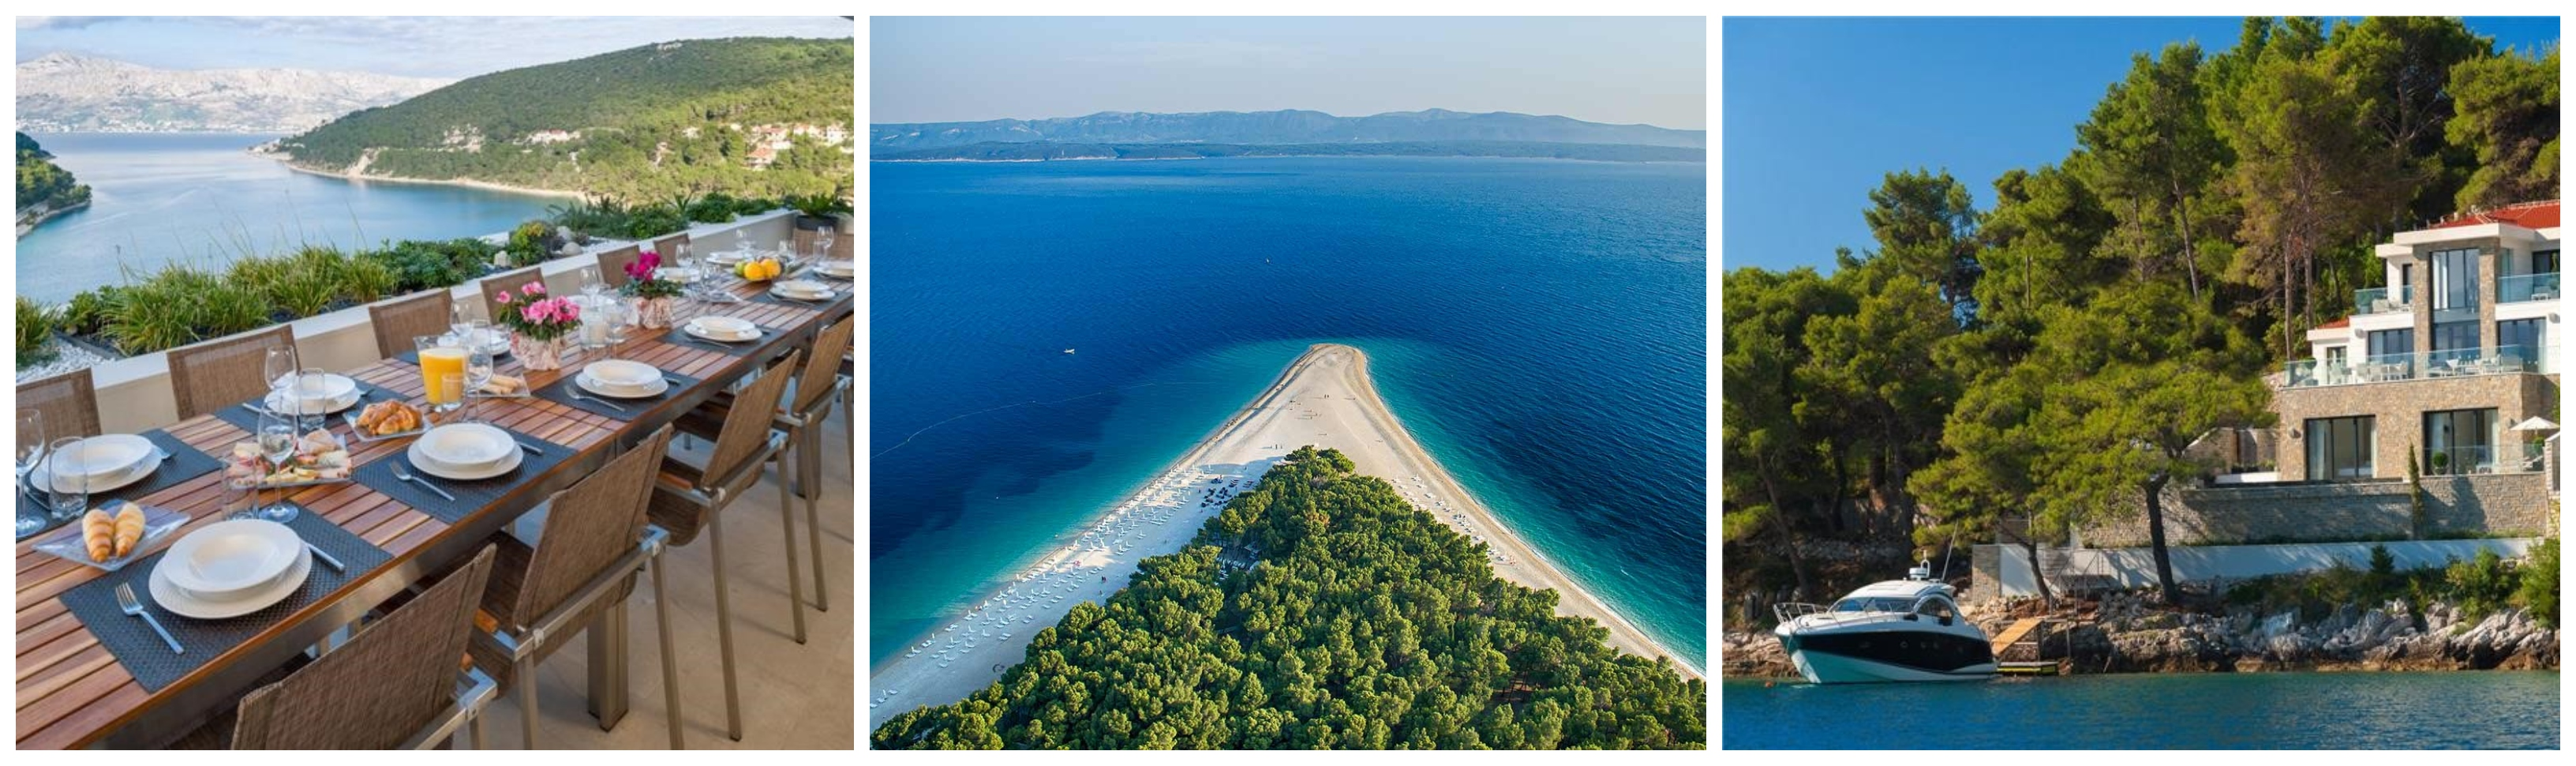 Villas on Brac Island